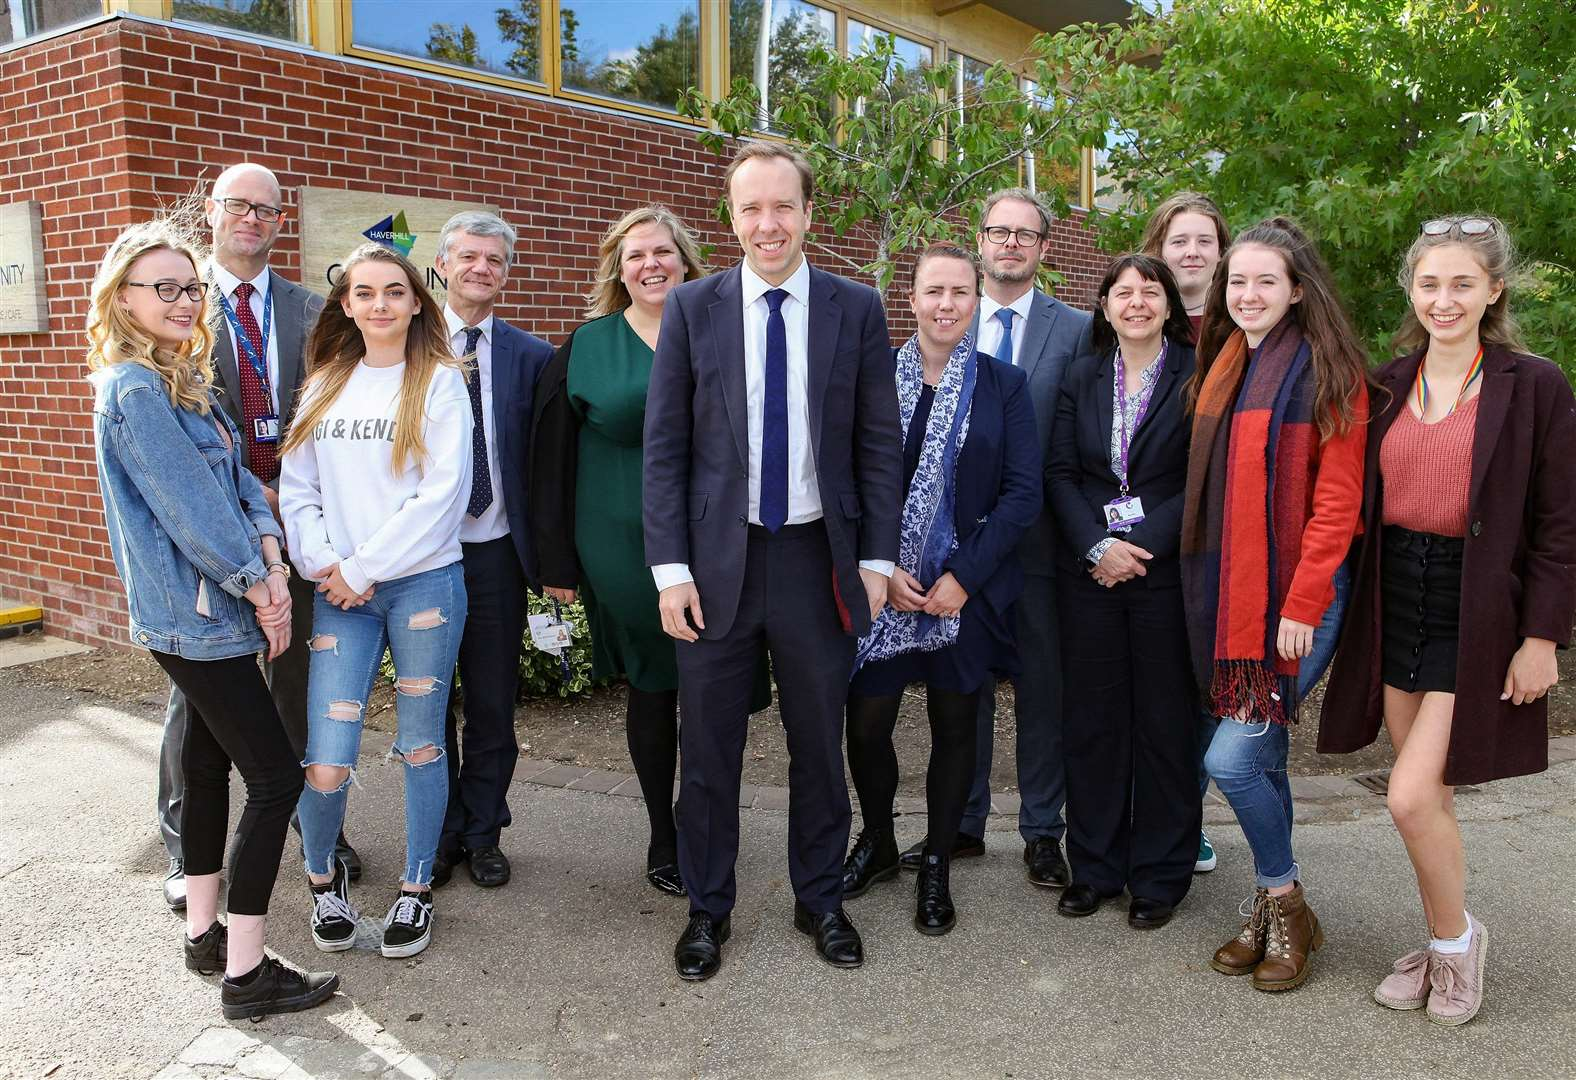 New-look Haverhill Community Sixth form impresses town's MP